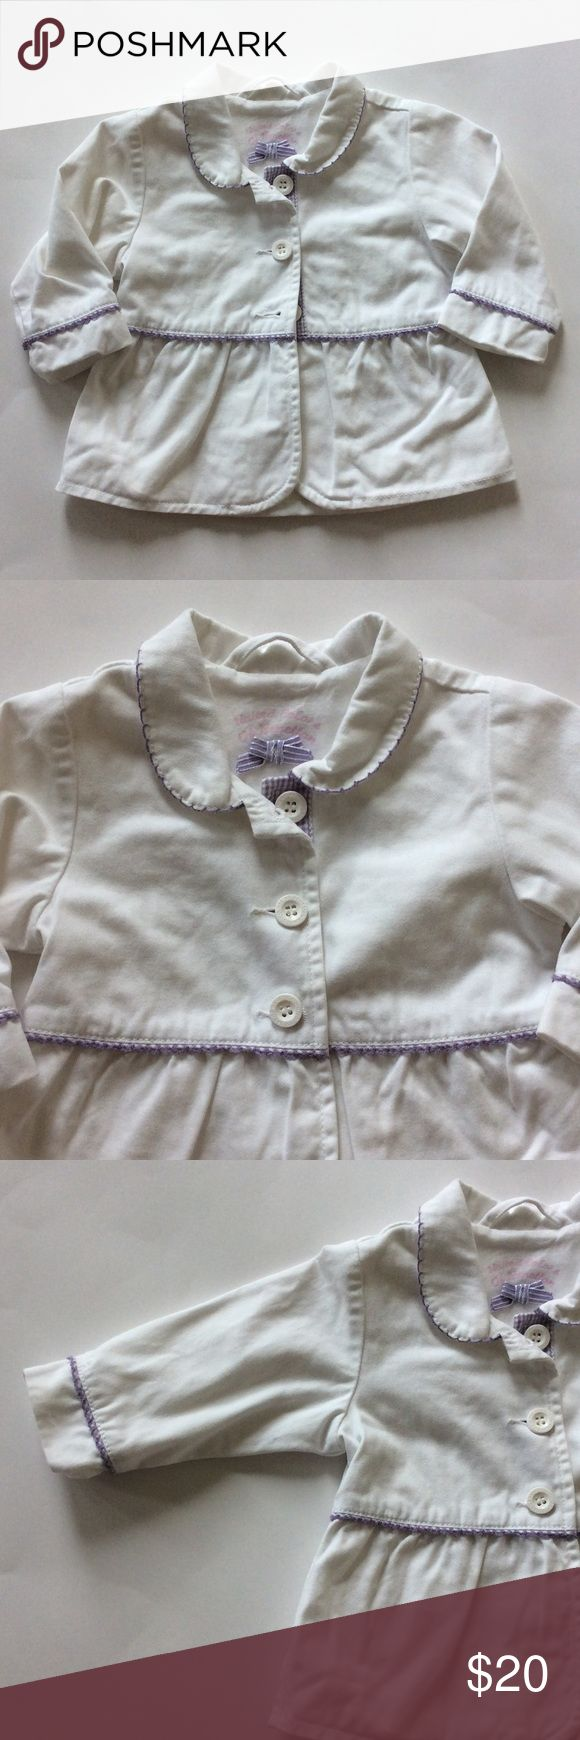 Benetton Baby jacket Super cute Benetton Baby jacket. Soft and sweet, white with lavender detailing. Lined. Long sleeves. 100% cotton. Size 3-6 mths. Excellent condition. Benetton Jackets & Coats